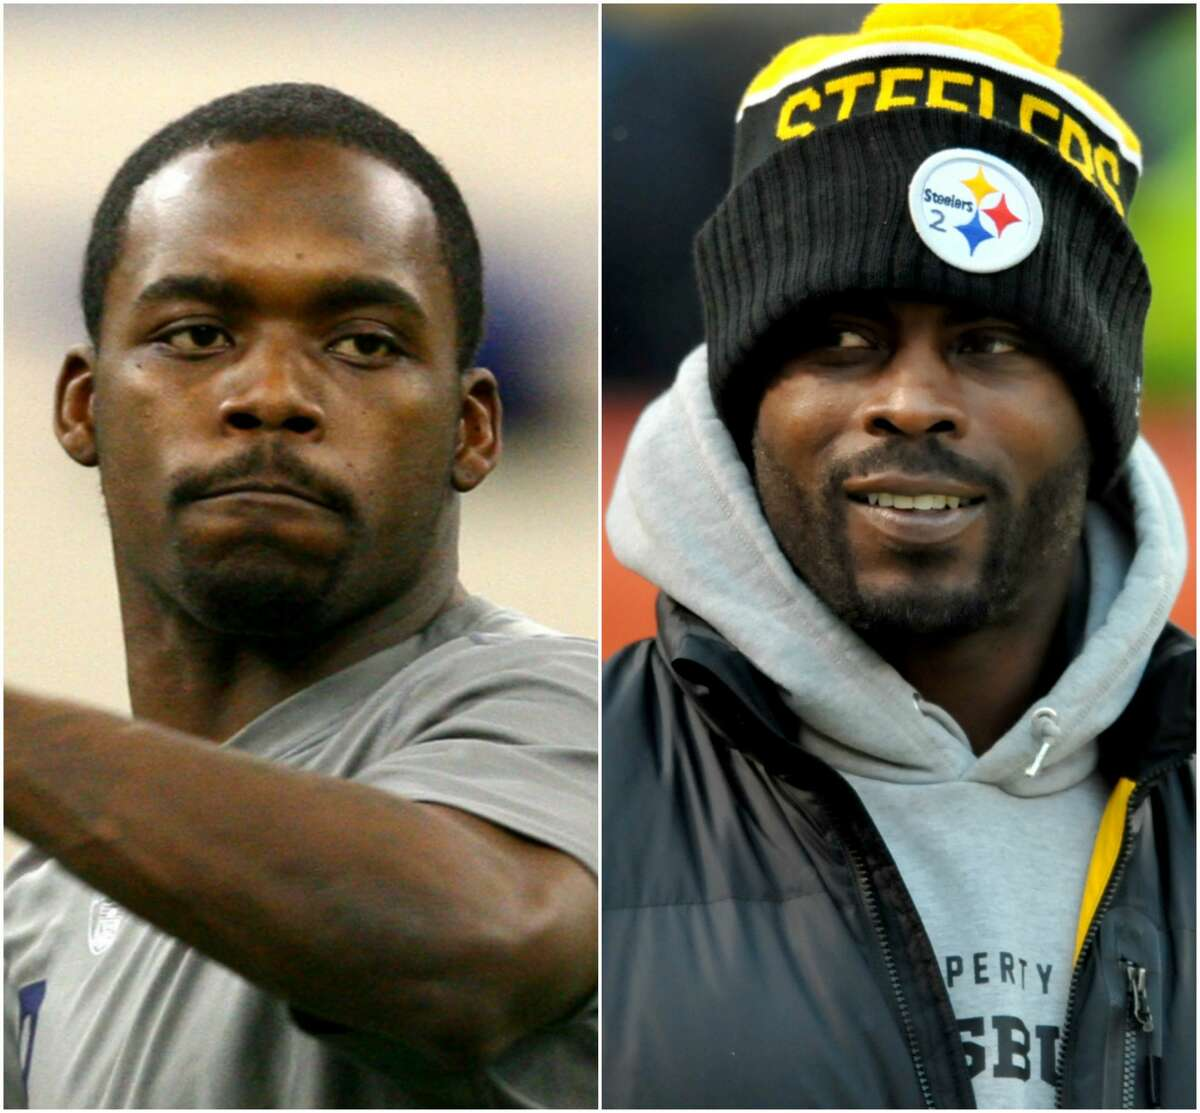 Marcus and Michael Vick Michael (right) is the veteran NFL quarterback whose career had dizzying highs (being drafted first overall) and lows (going to jail for dogfighting). Marcus' claim to fame other than briefly playing at his big brother's alma mater Virginia Tech is for his off-the-field issues and tweets criticizing his brother's teammates.